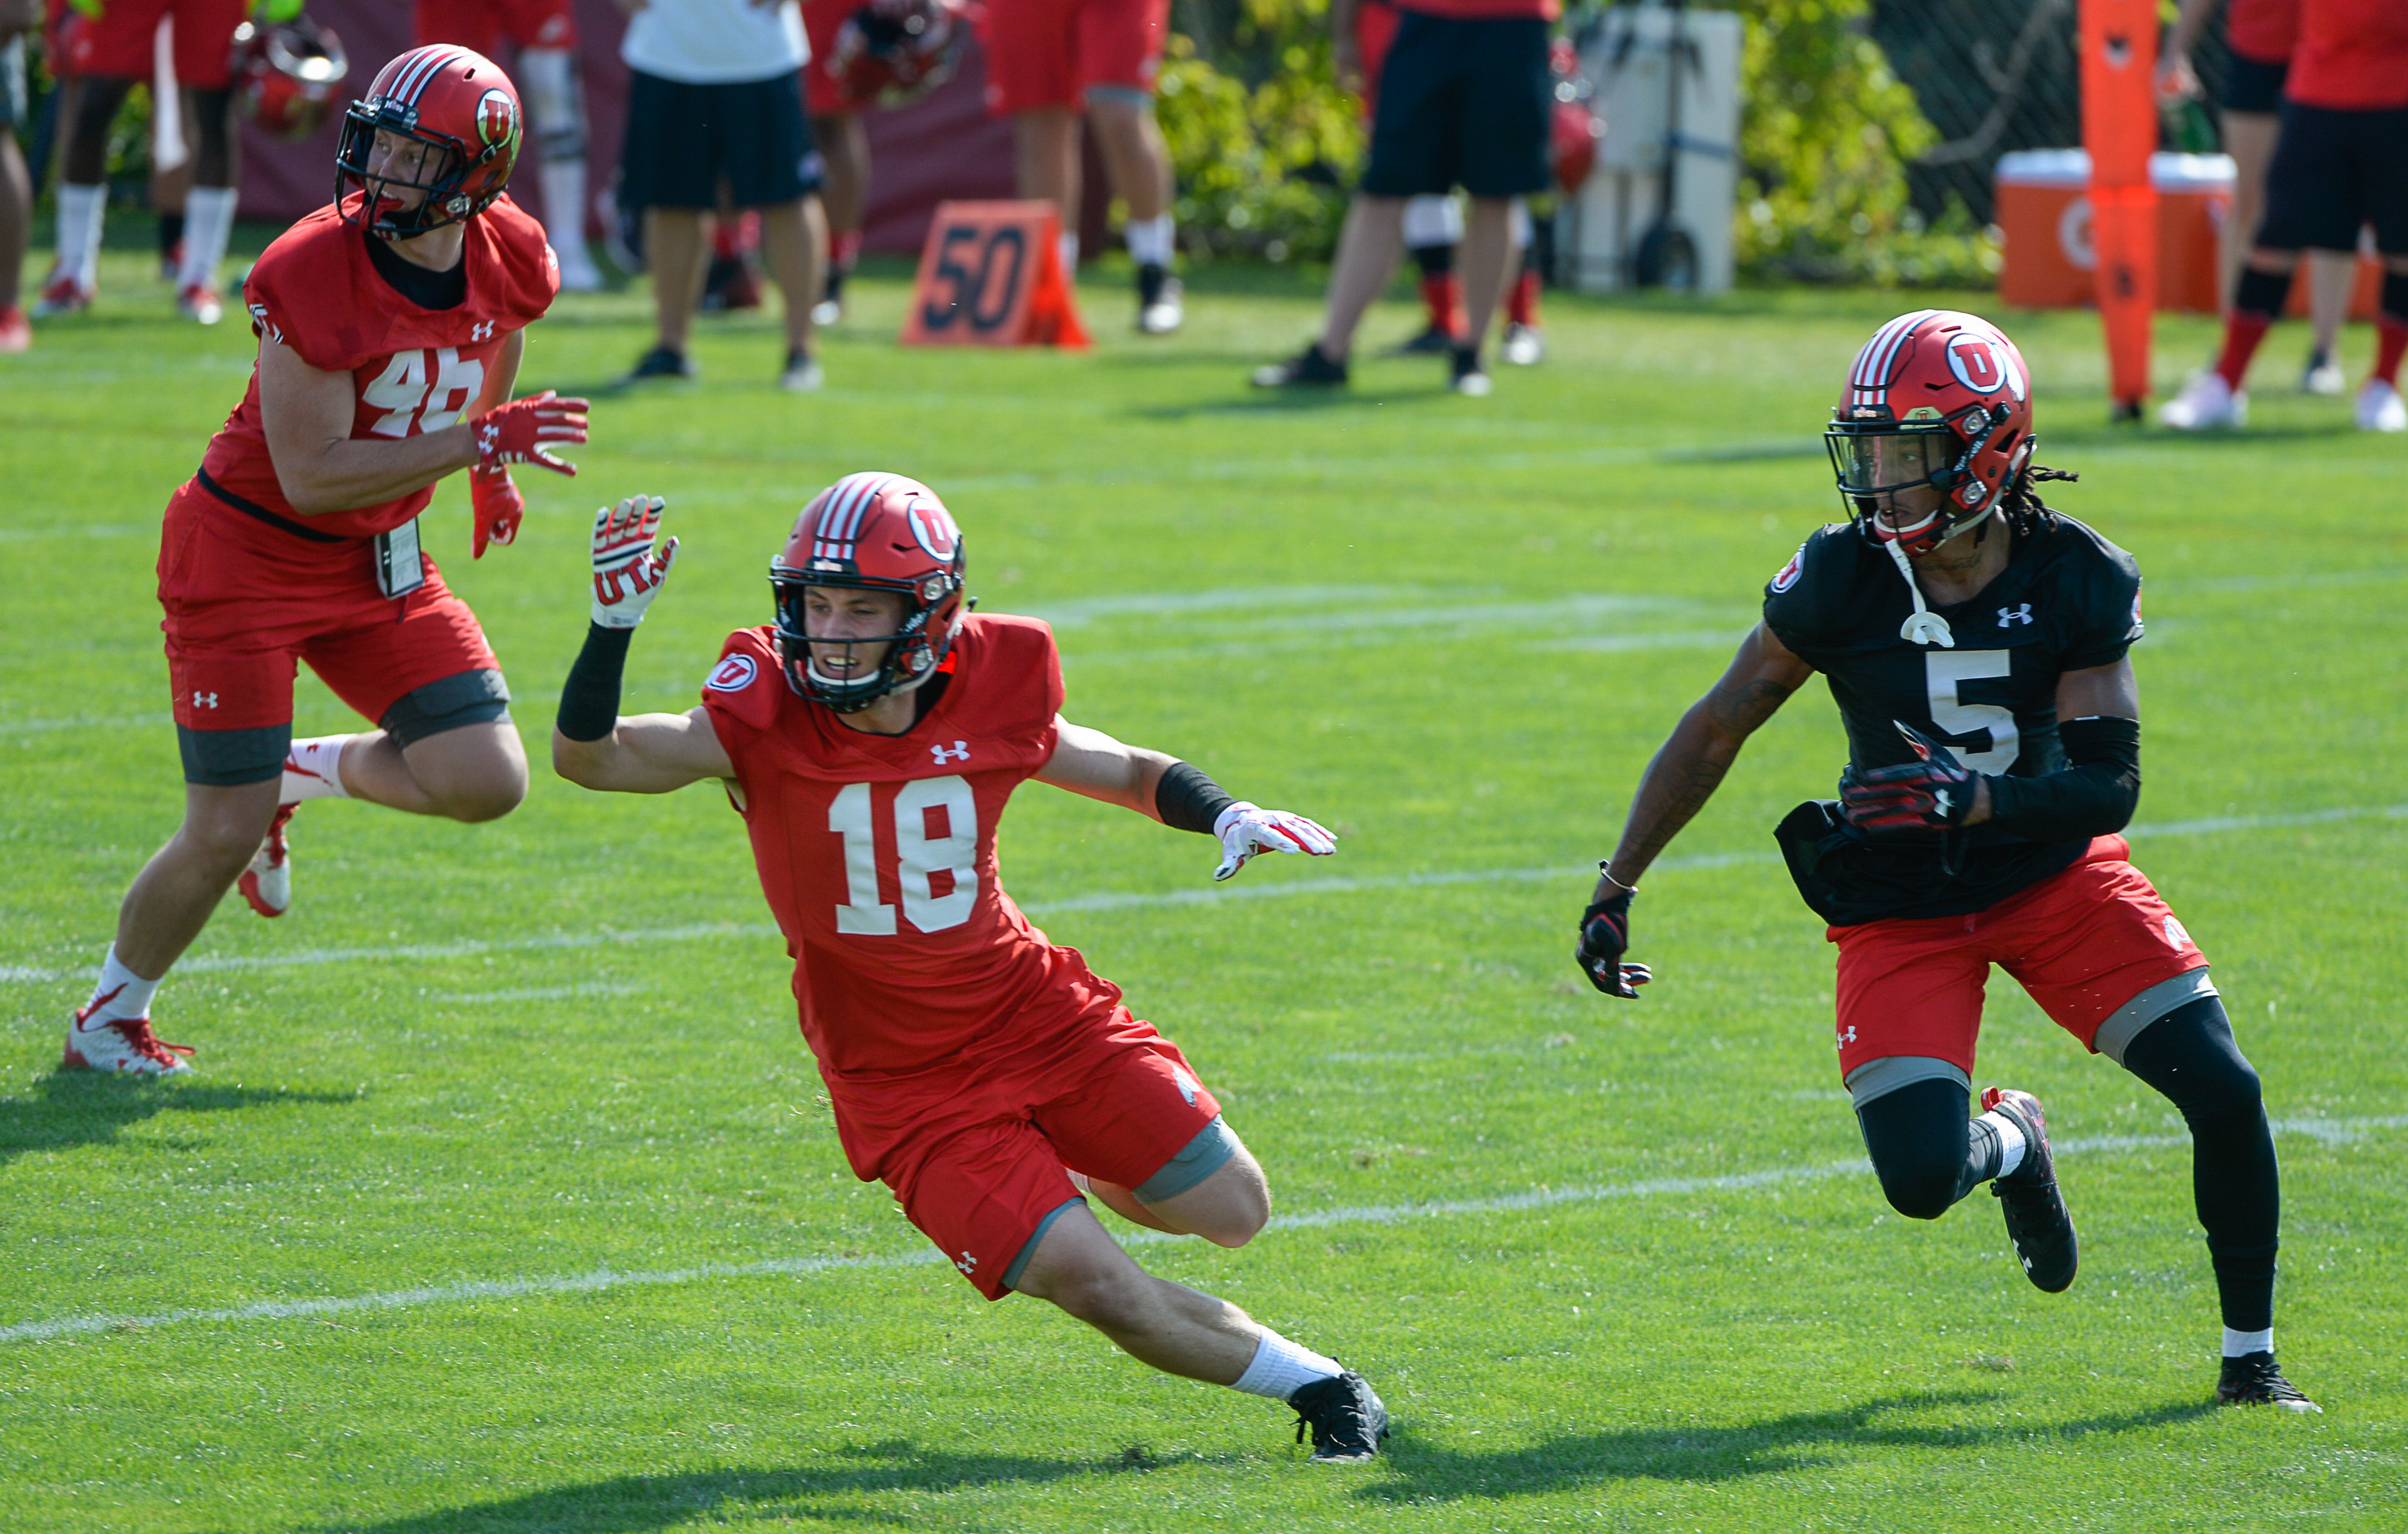 Red All Over: Utes have answered a lot of questions about themselves during this preseason camp. Fans should be encouraged.